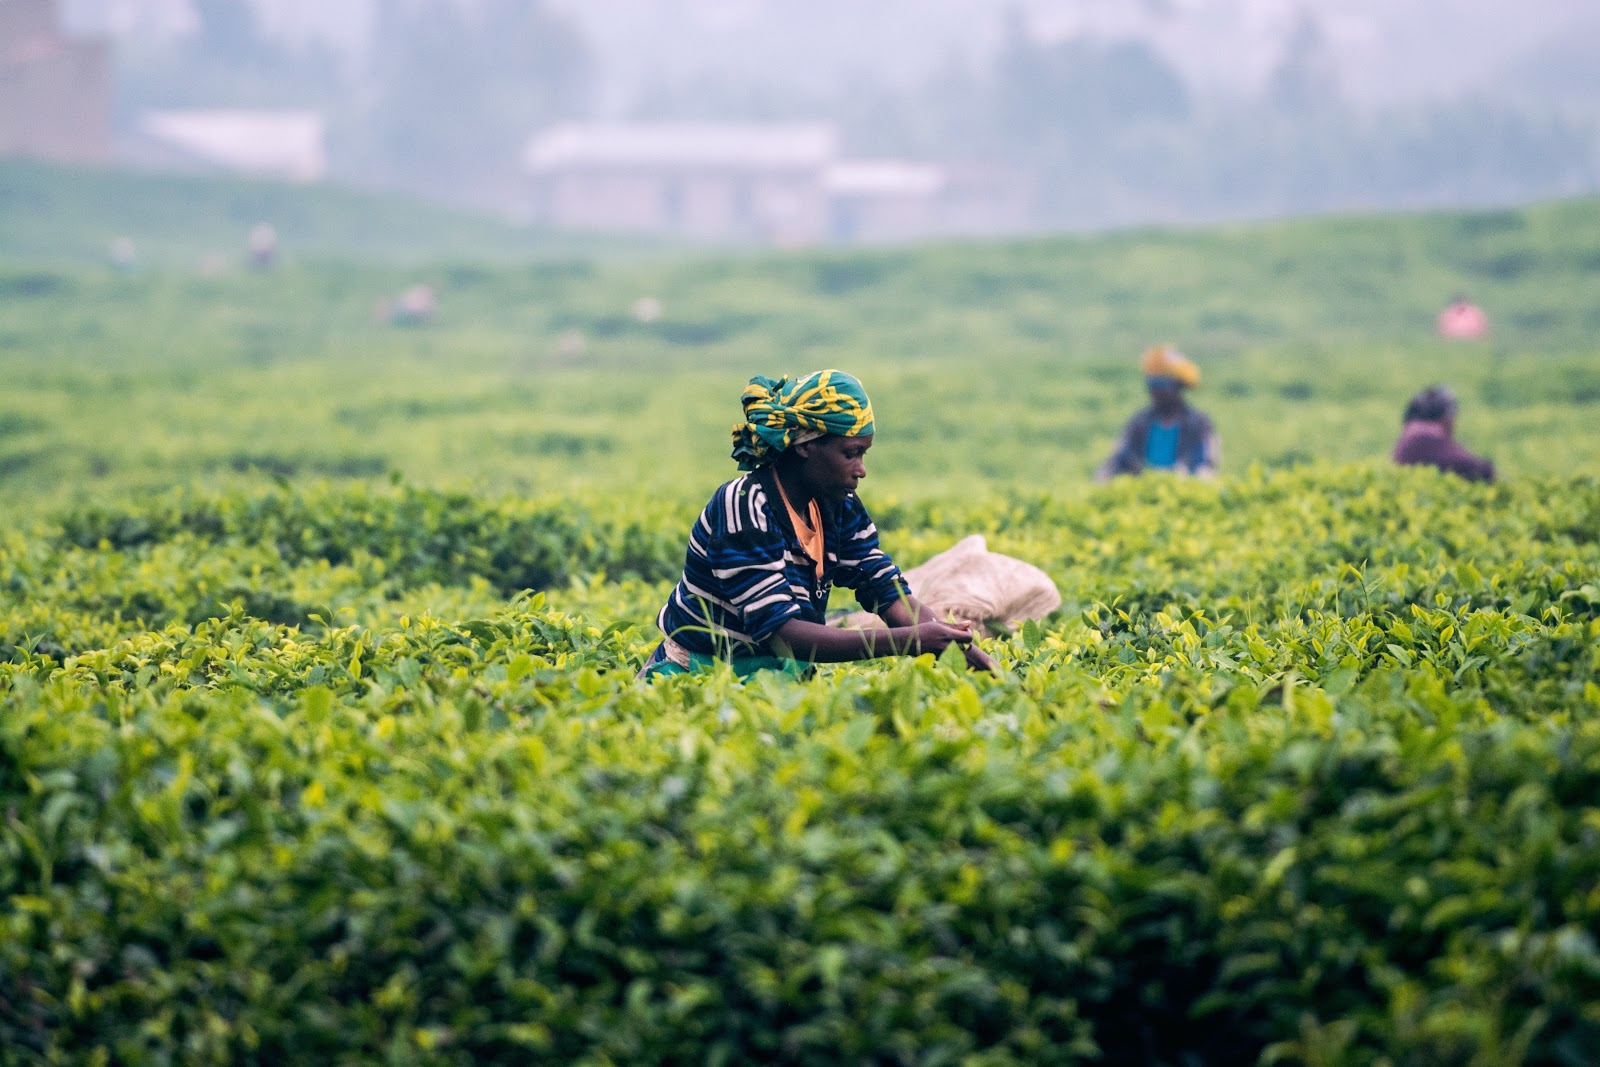 Progressive reforms can turn the tide for farmers